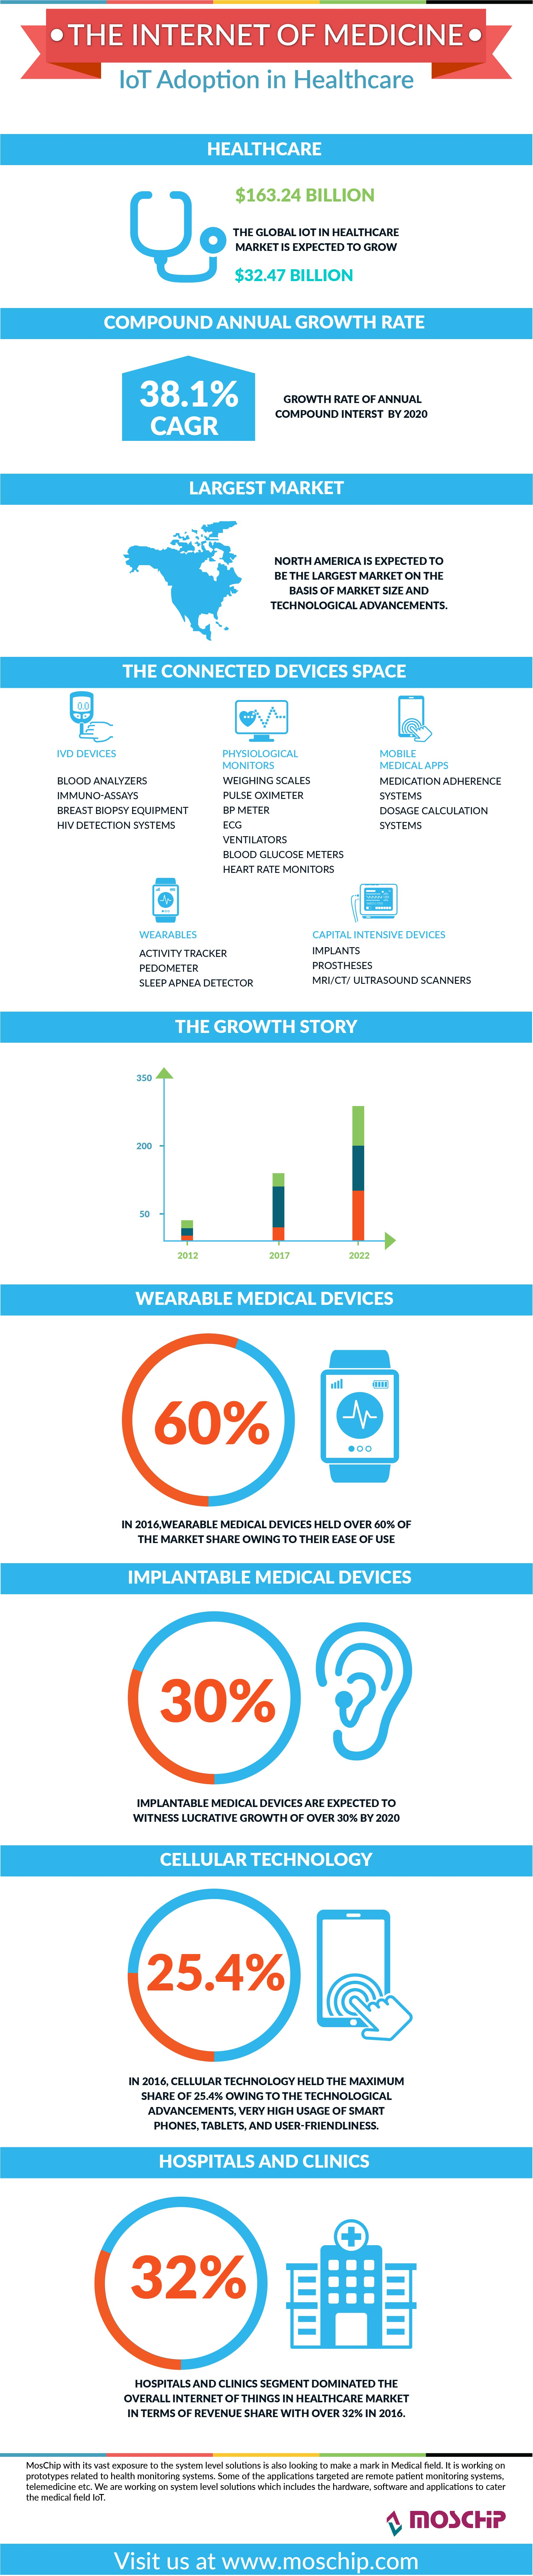 The Internet of Medicine-IoT Adoption in Healthcare